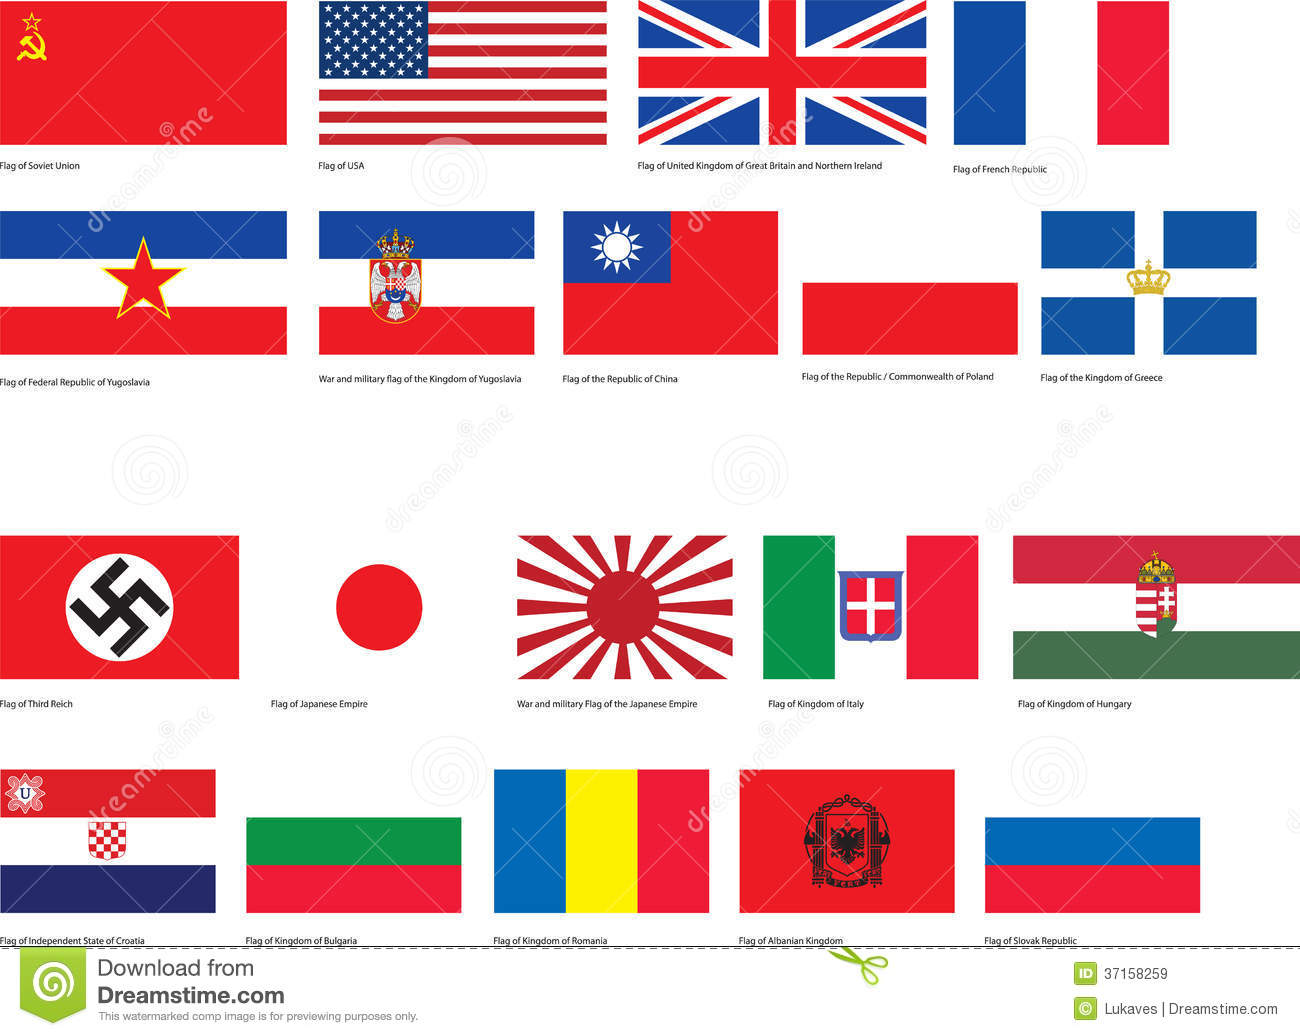 World war 2 lessons tes teach ww2 flags royalty free stock images image 37158259 gumiabroncs Gallery